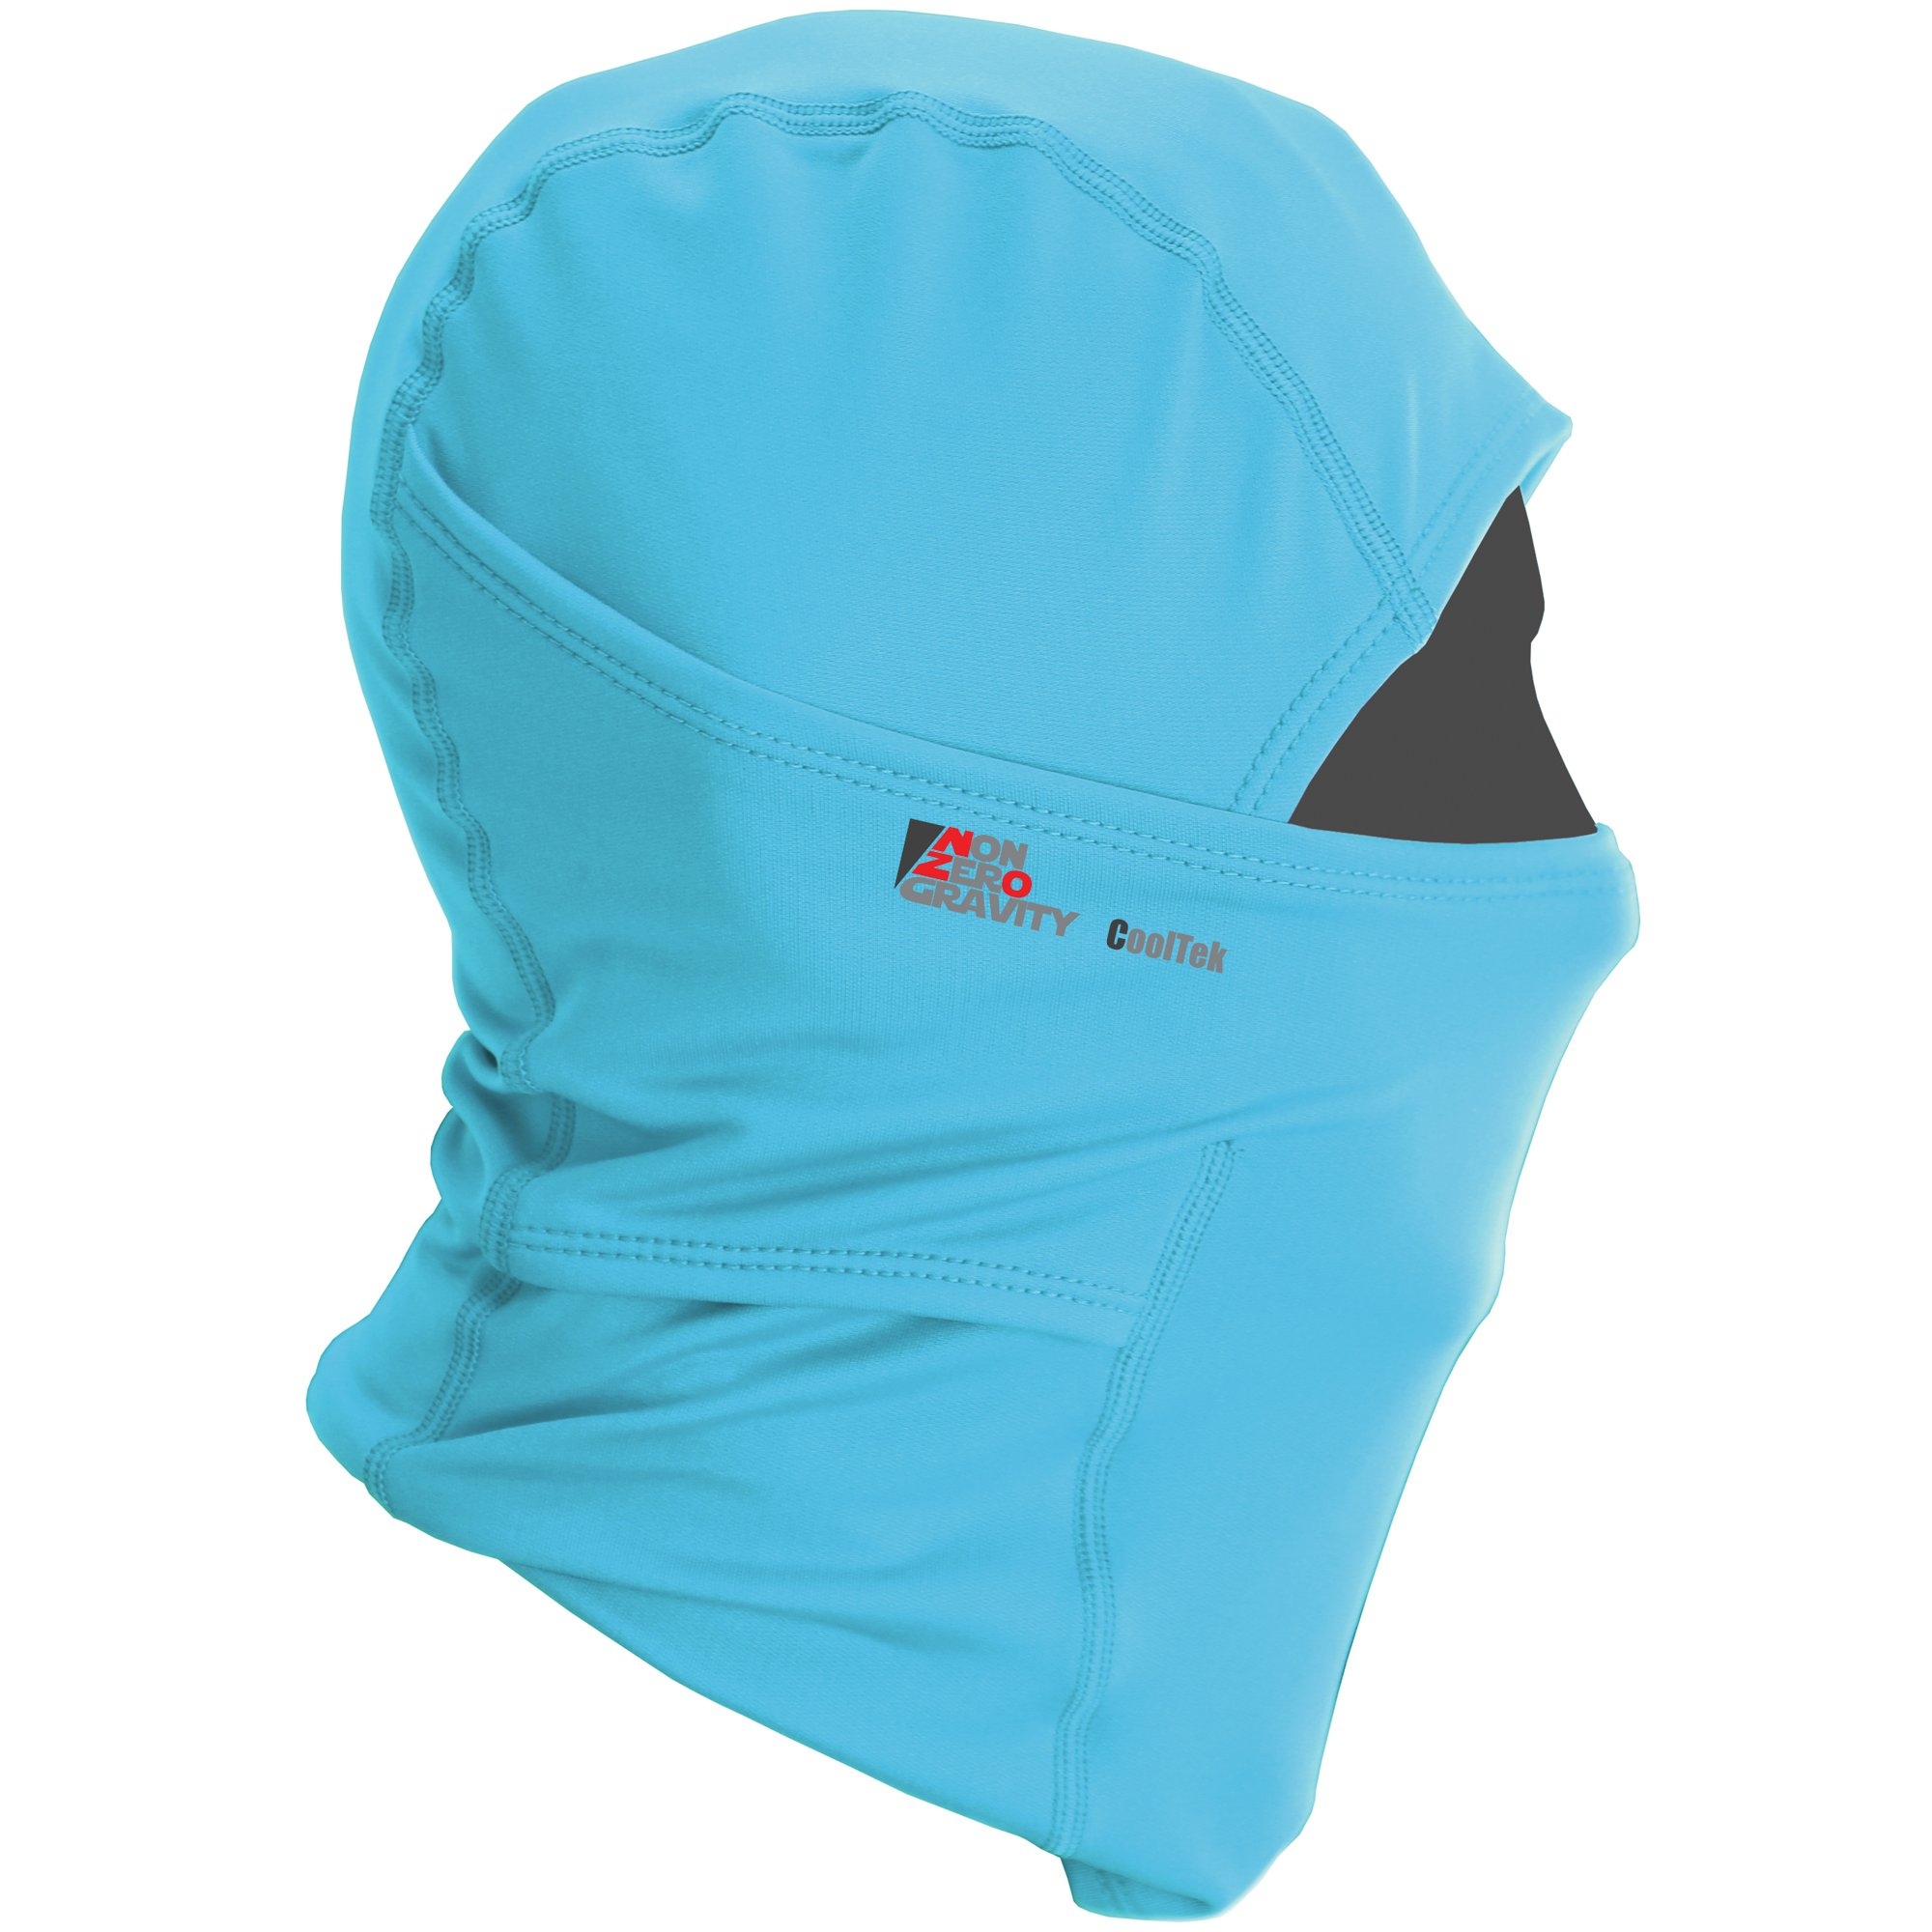 NonZero Gravity Cooling Hood | Tactical Hoodie, Head Wrap And Neck Scarf For Cycling, Biking And Sports (Tactical, Blue)